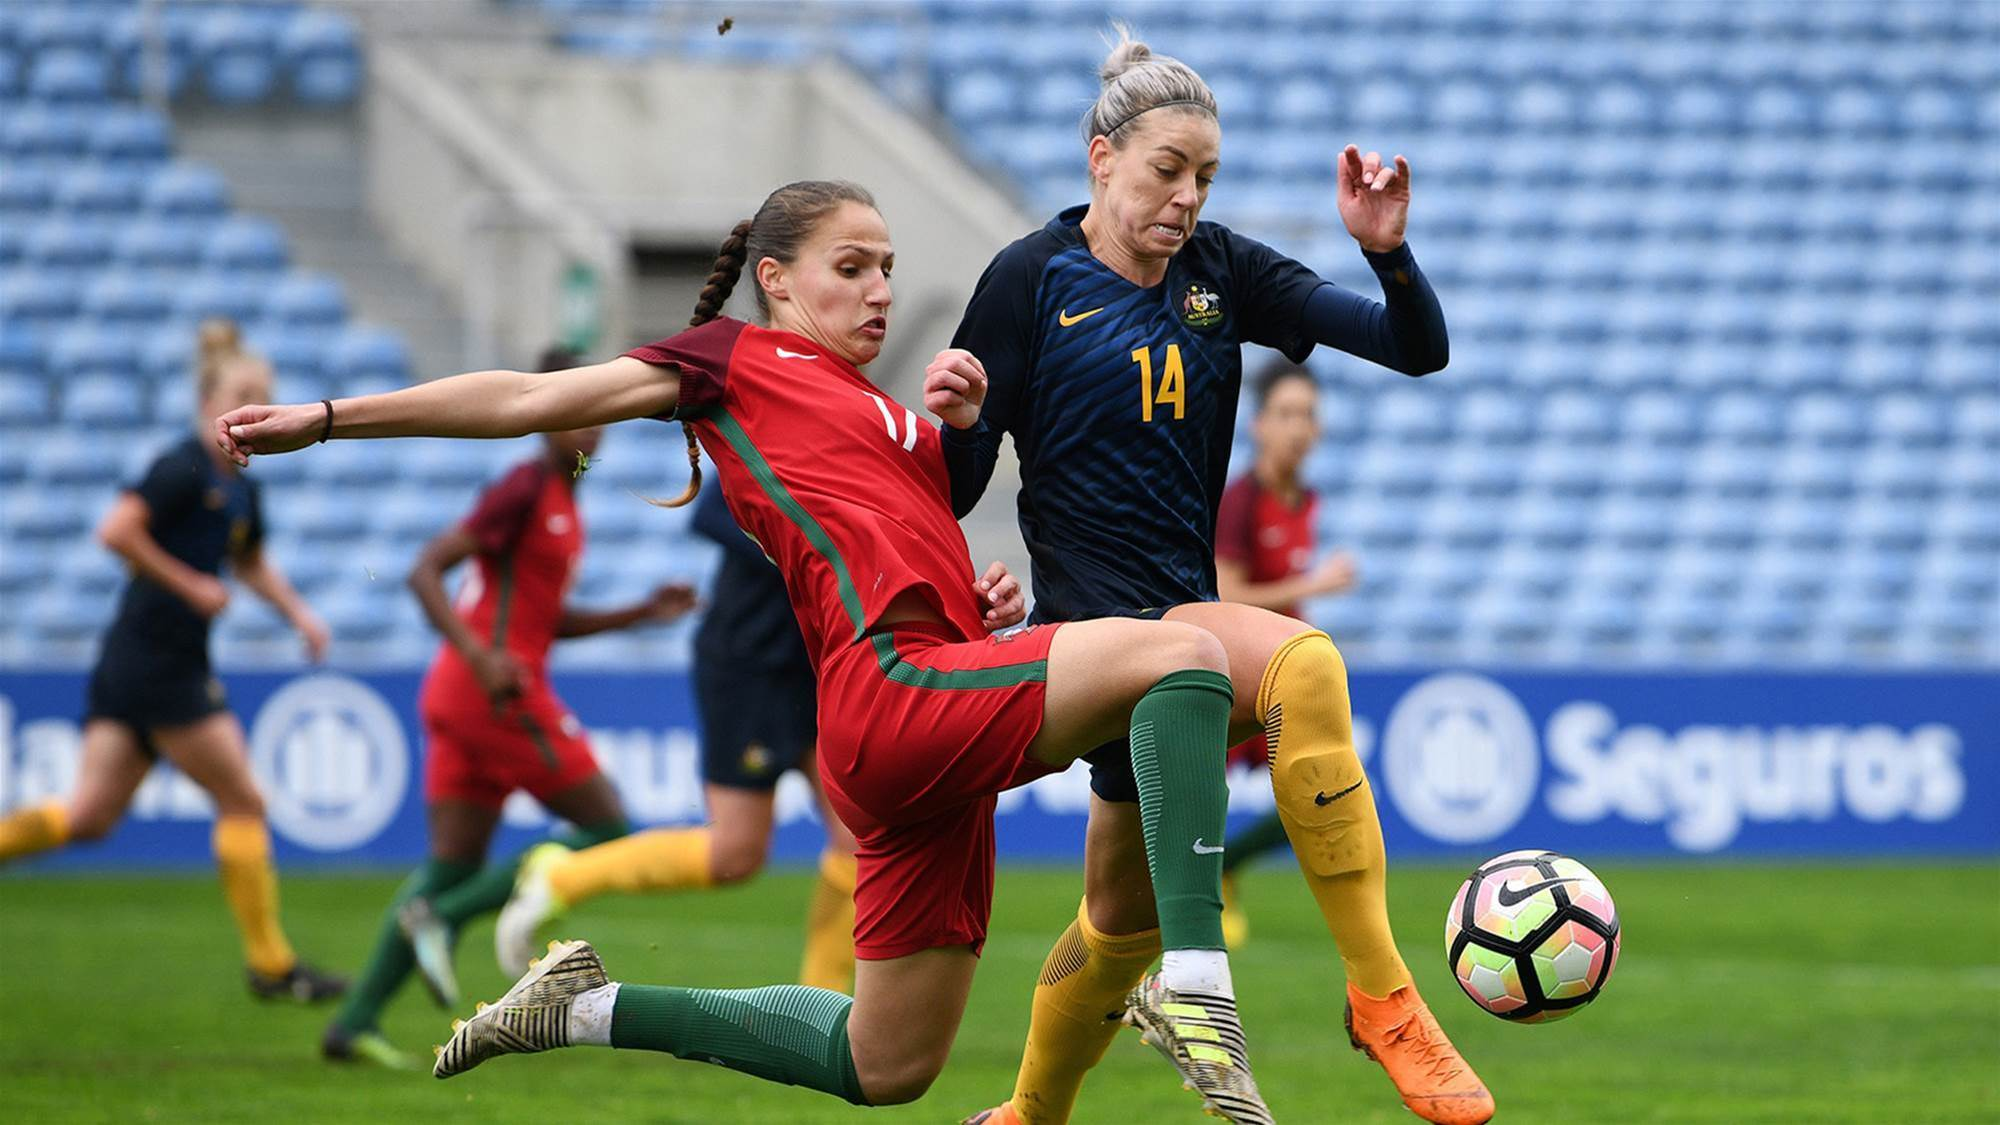 Stalemate for Portugal and Australia